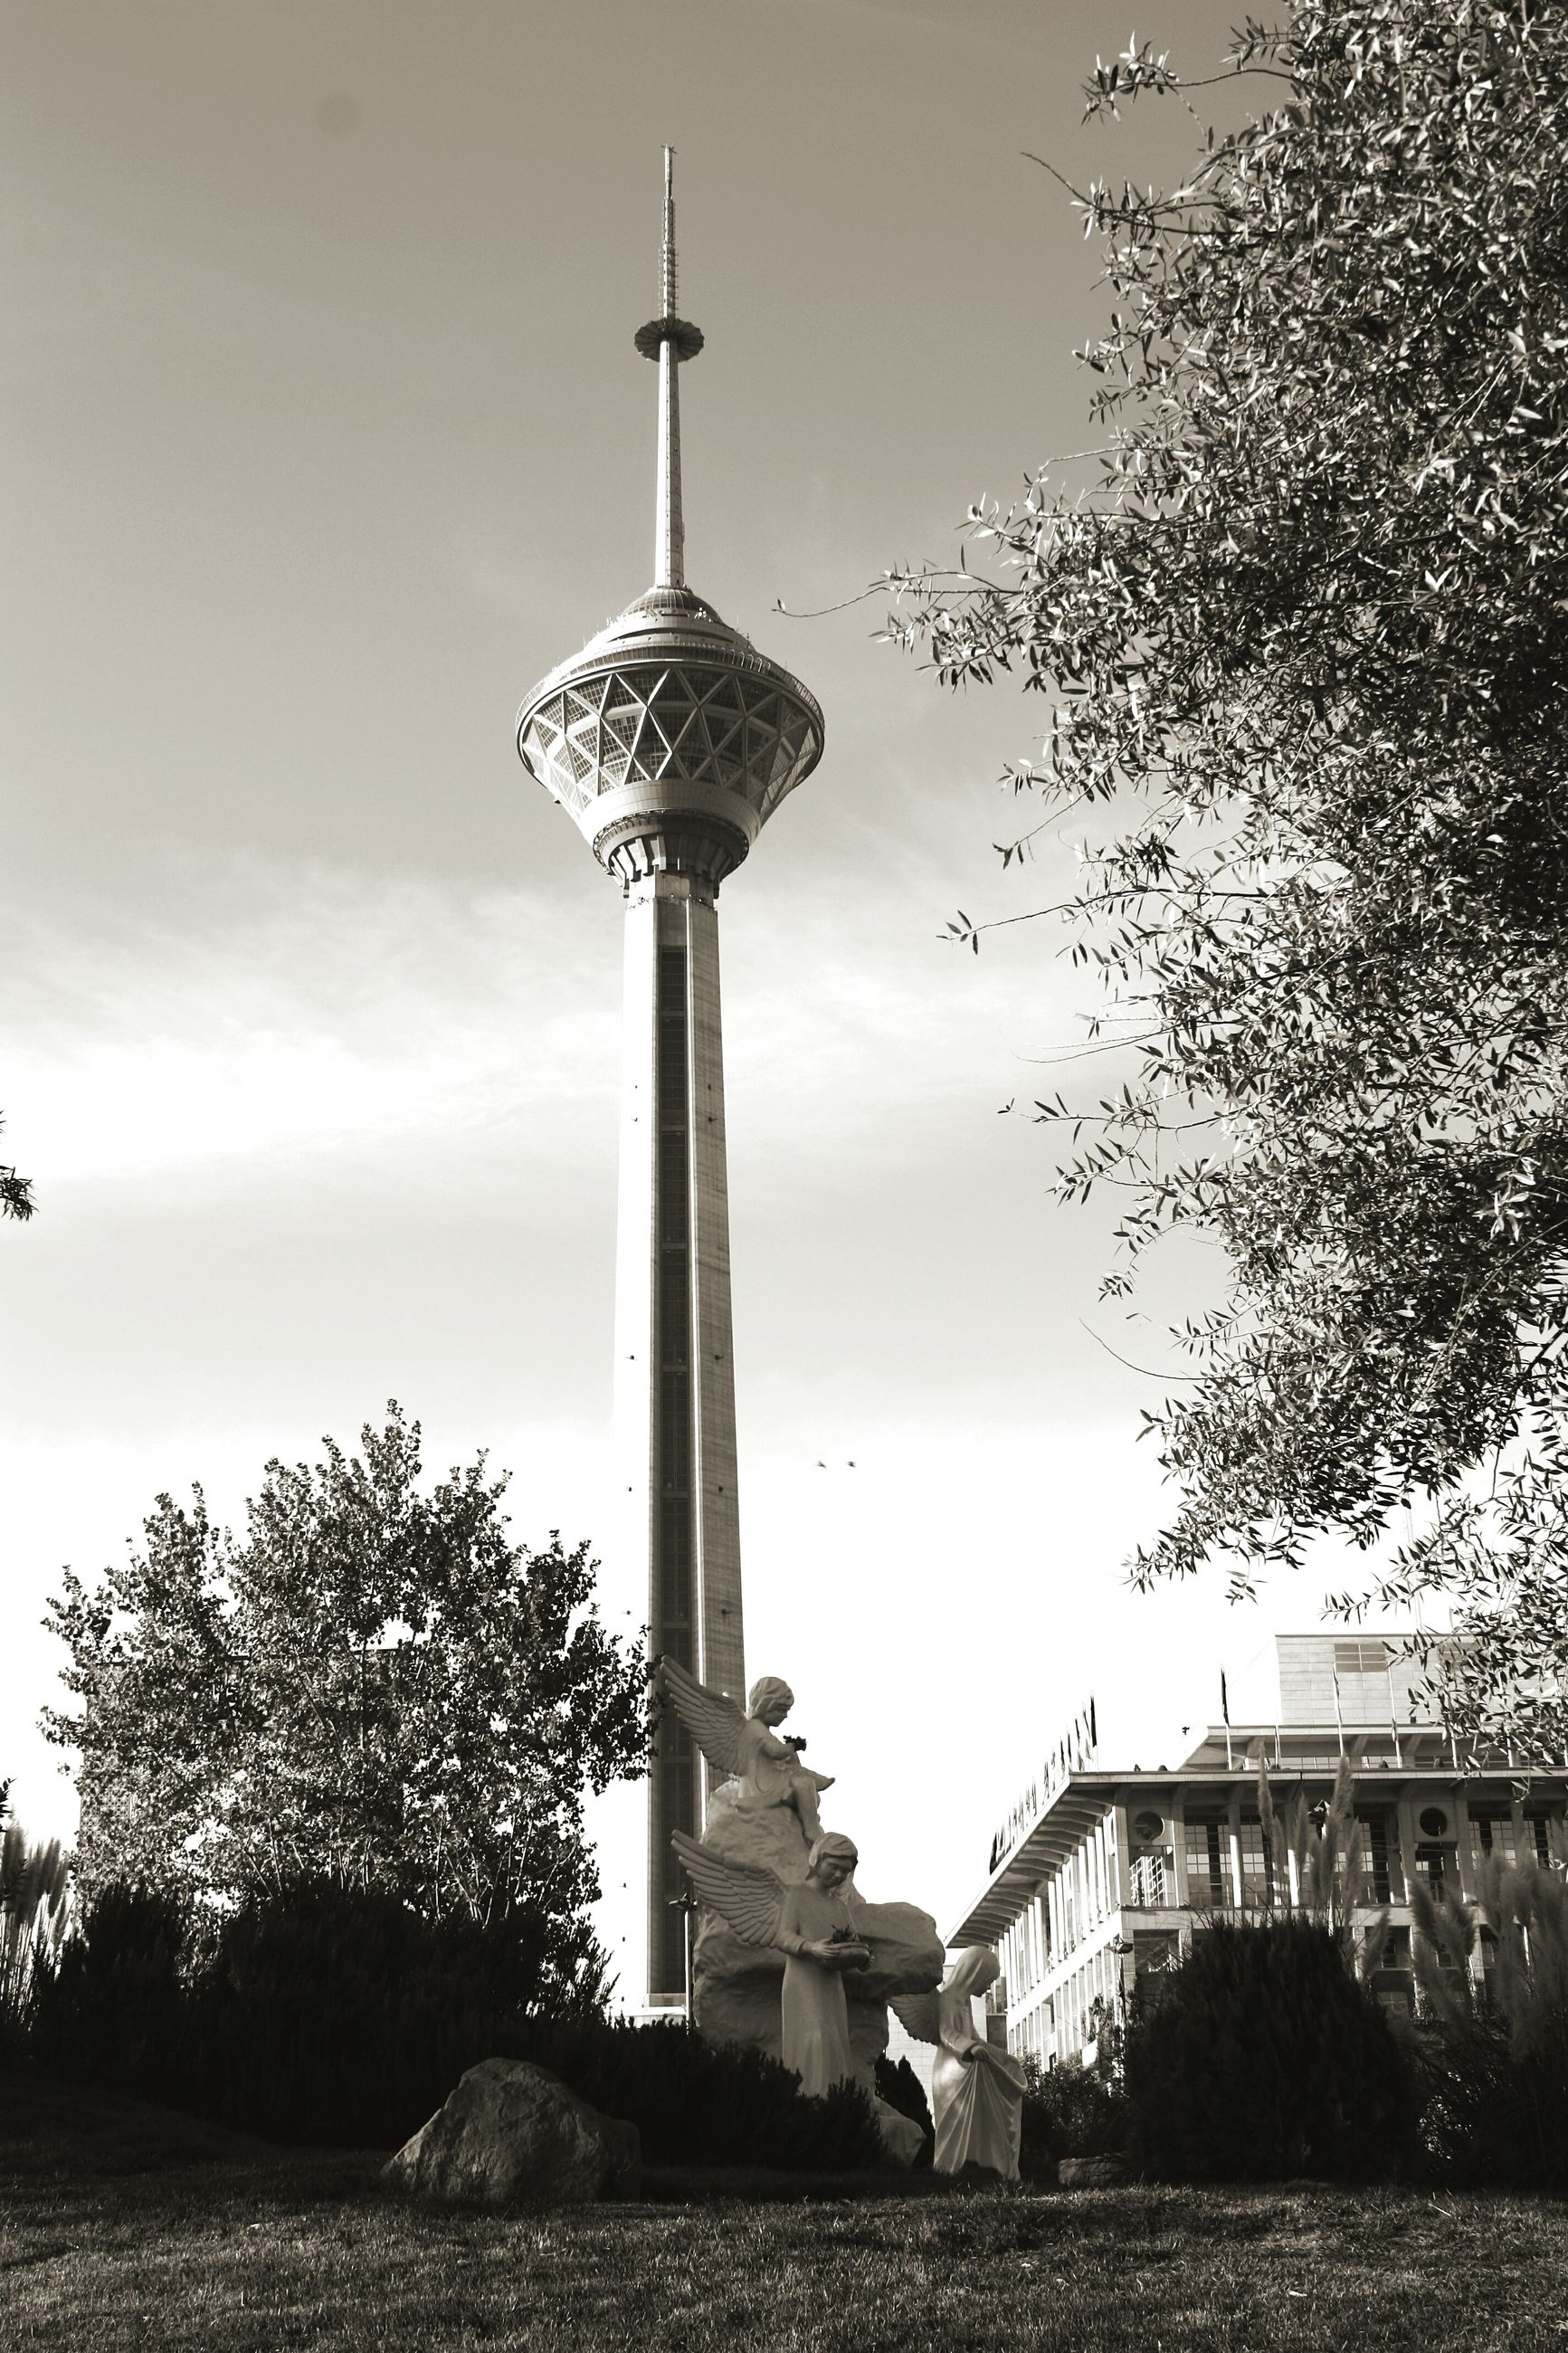 tree, tower, sky, communications tower, built structure, architecture, tall - high, building exterior, low angle view, communication, guidance, cloud - sky, travel destinations, lighthouse, spire, culture, day, fernsehturm, no people, outdoors